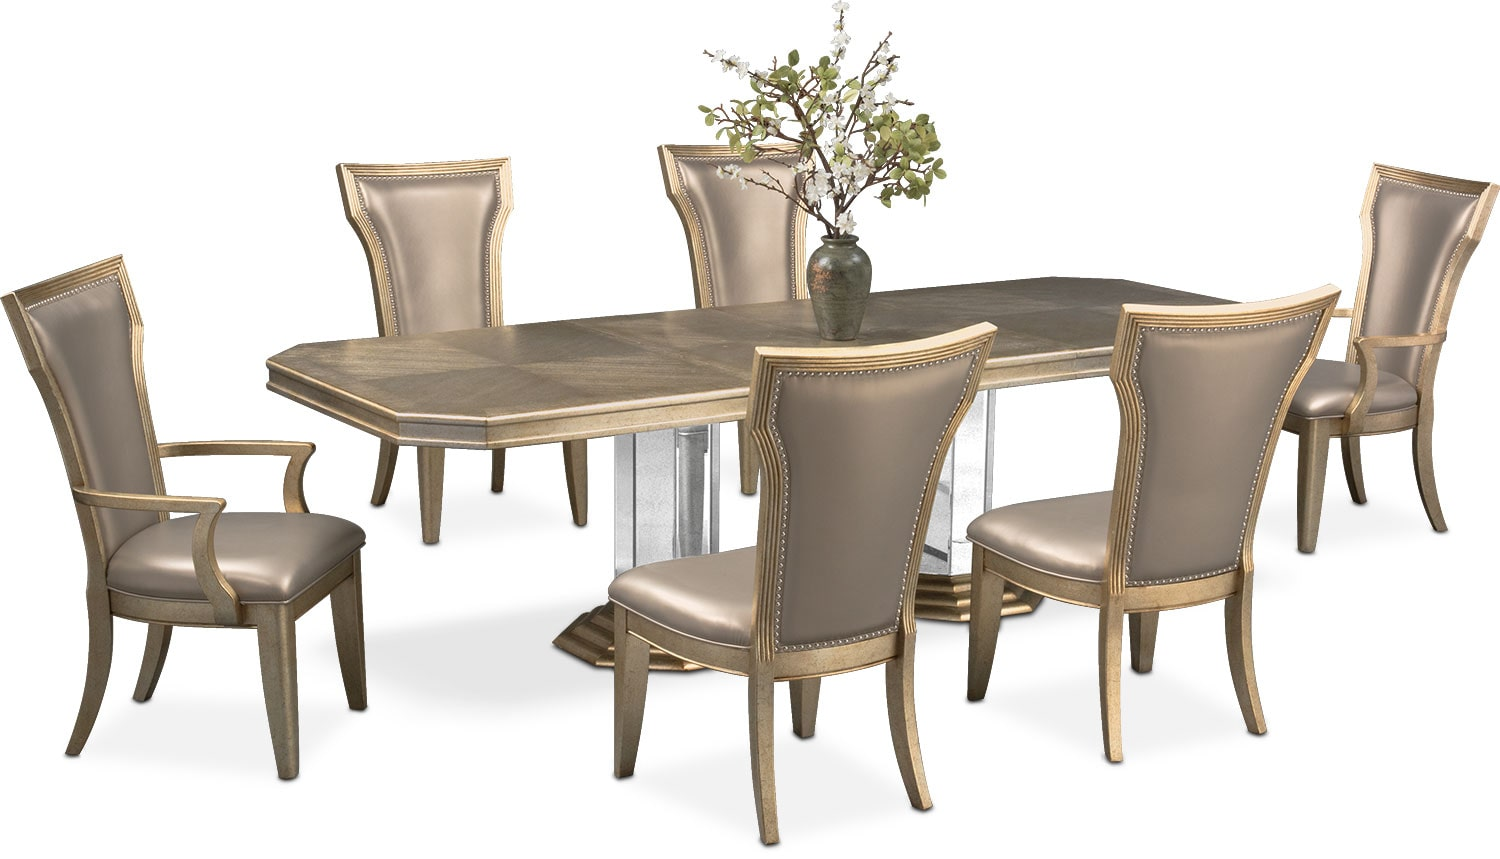 Dining Room Furniture - Angelina Double-Pedestal Table, Two Arm Chairs and 4 Side Chairs - Metallic